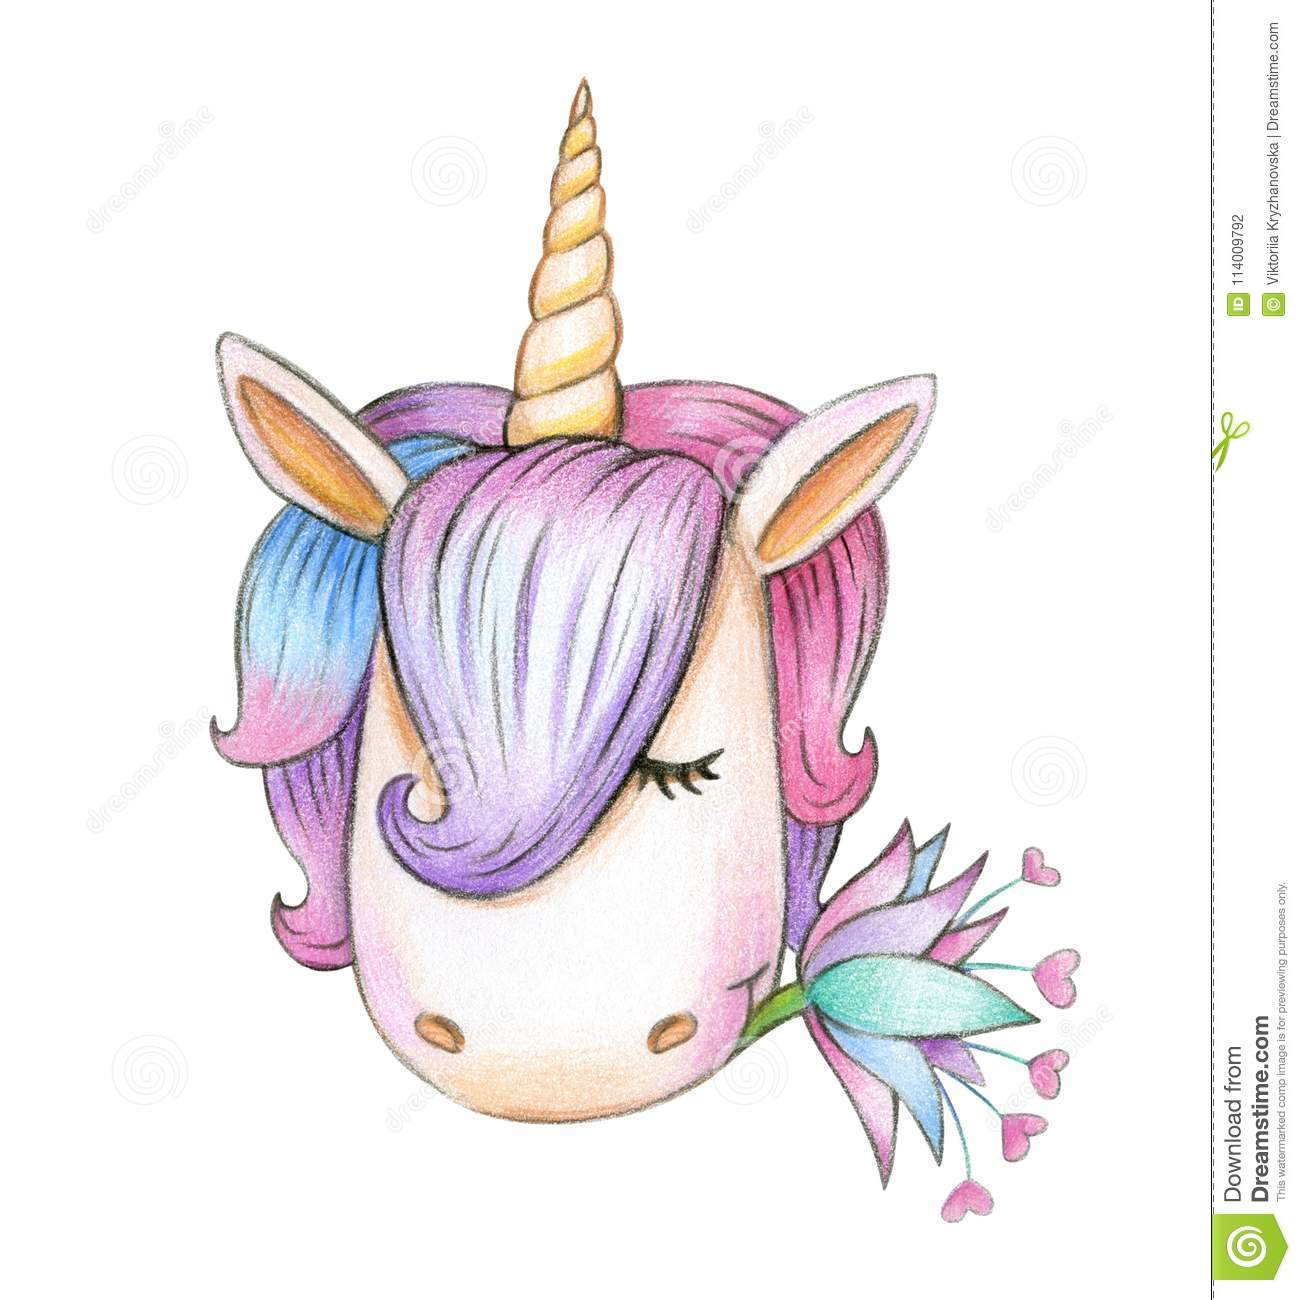 Disegni Unicorno Download Stock Disegni Di Unicorni Colorati Usitv